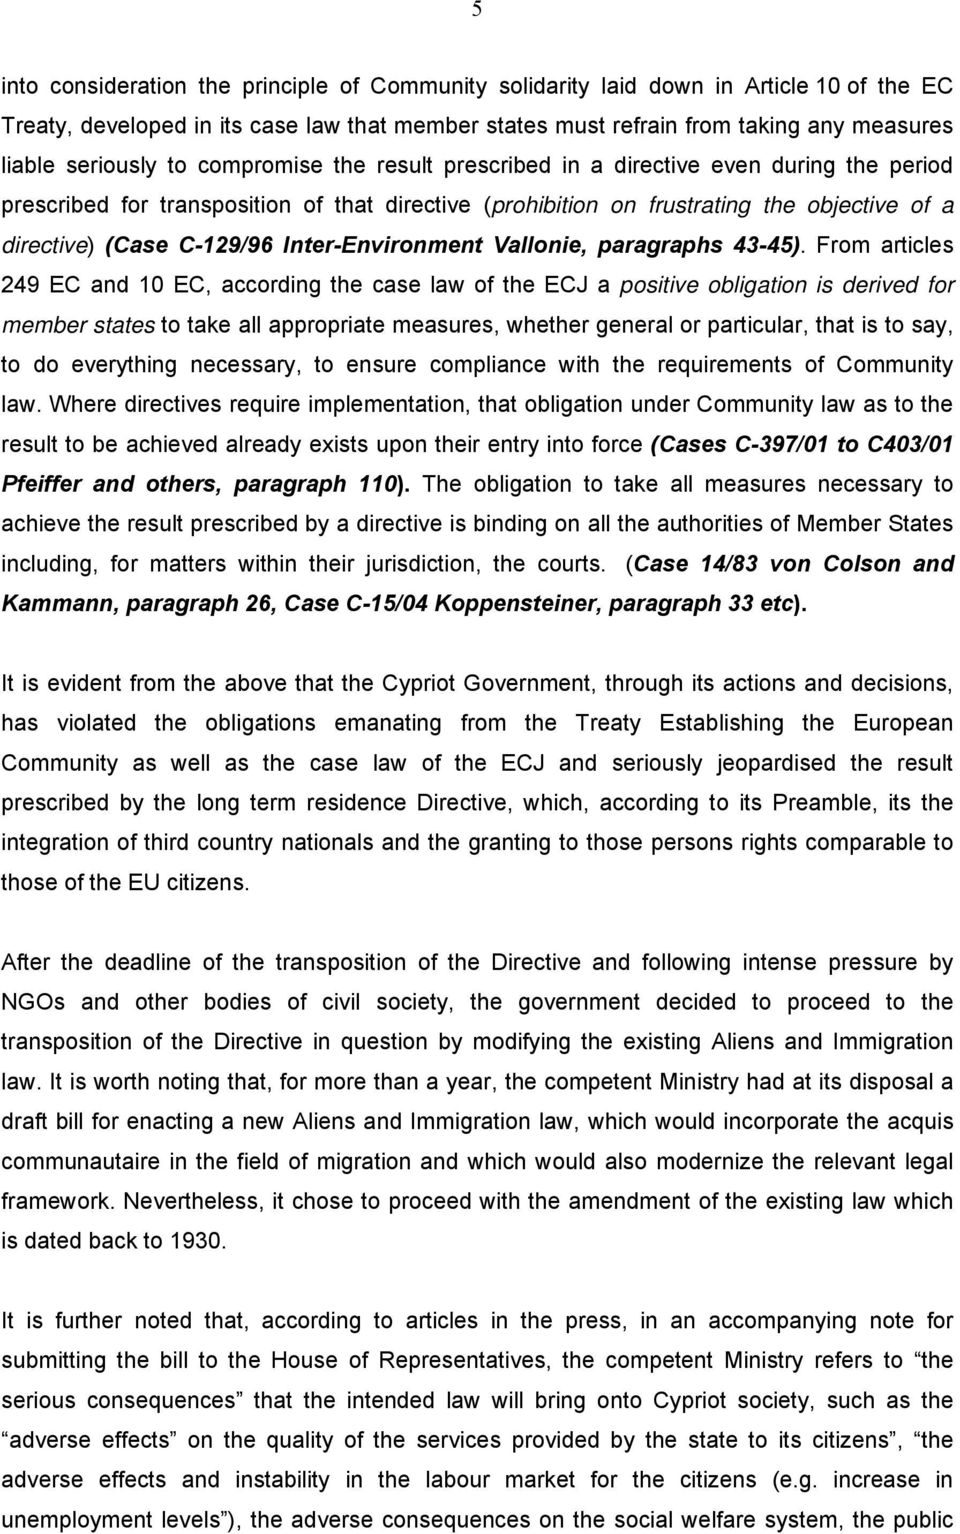 C-129/96 Inter-Environment Vallonie, paragraphs 43-45).